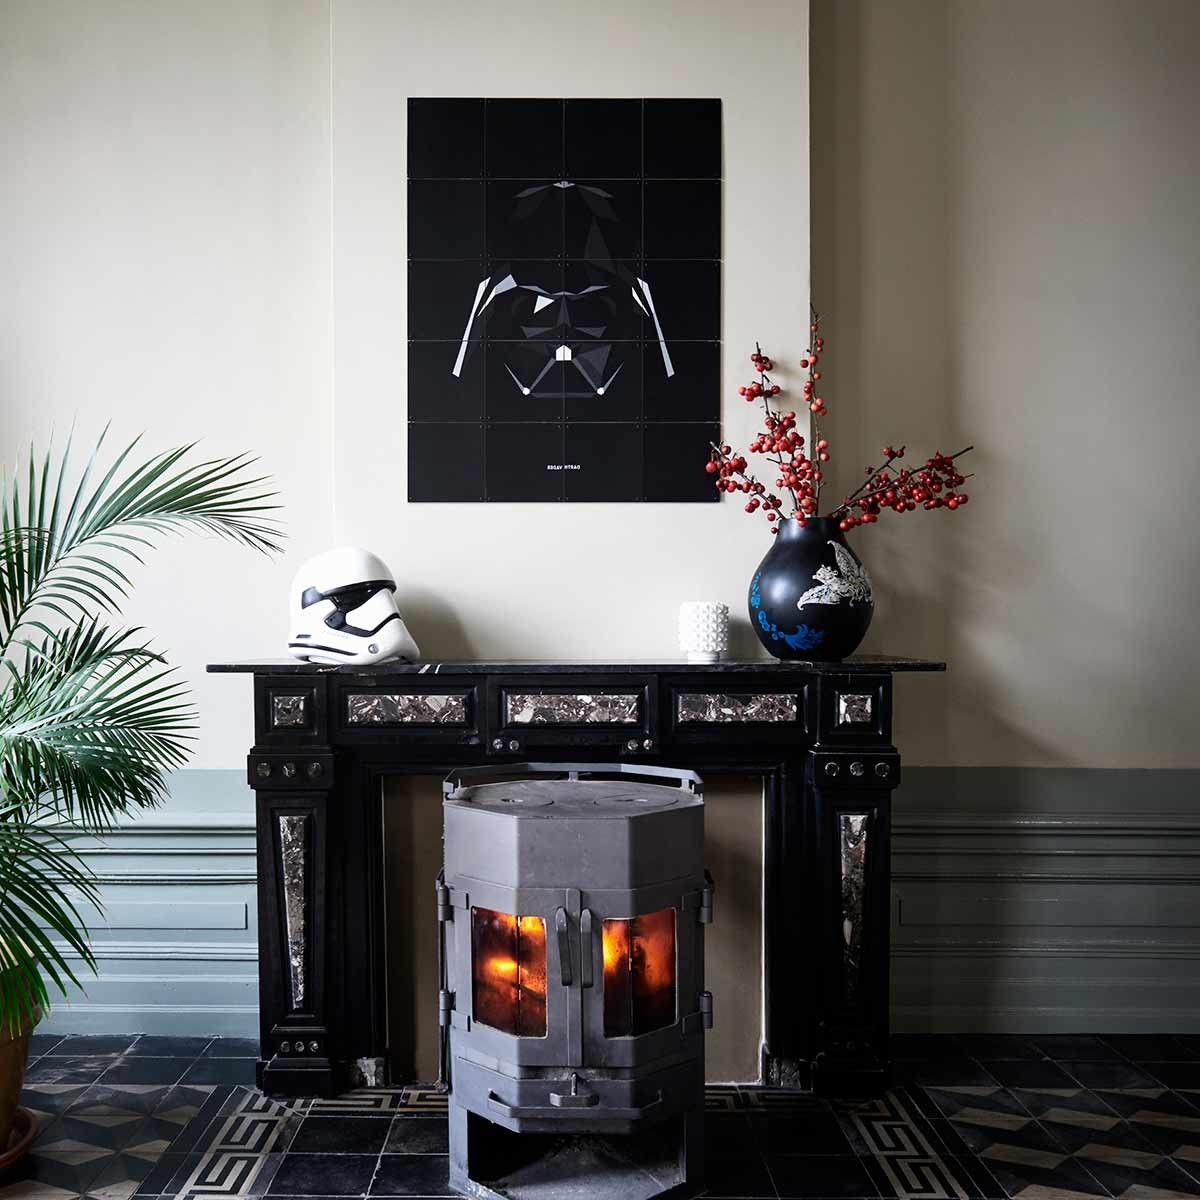 Star Wars Icons Darth Vader Wall Artixxi At Dotmaison In Most Recently Released Darth Vader Wall Art (View 19 of 20)